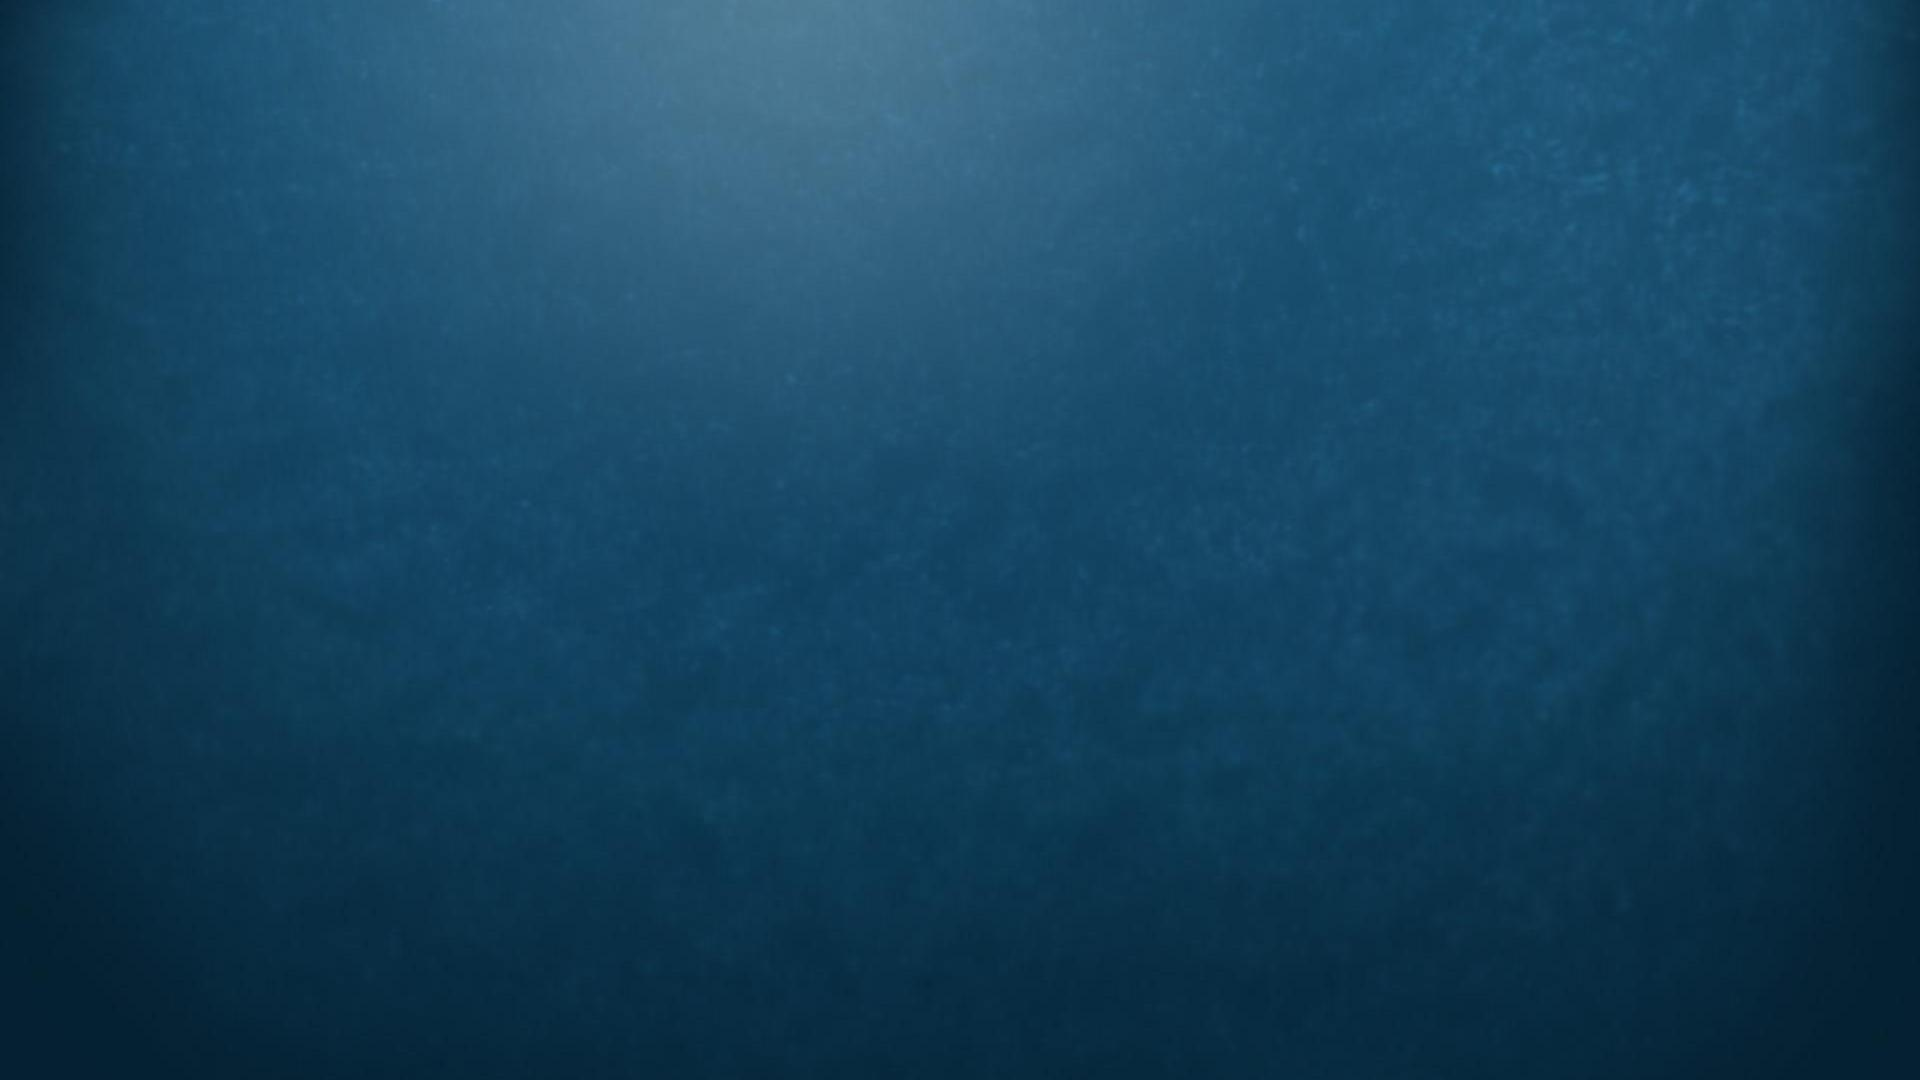 Blue HD 1920x1080 Wallpaper 1920x1080